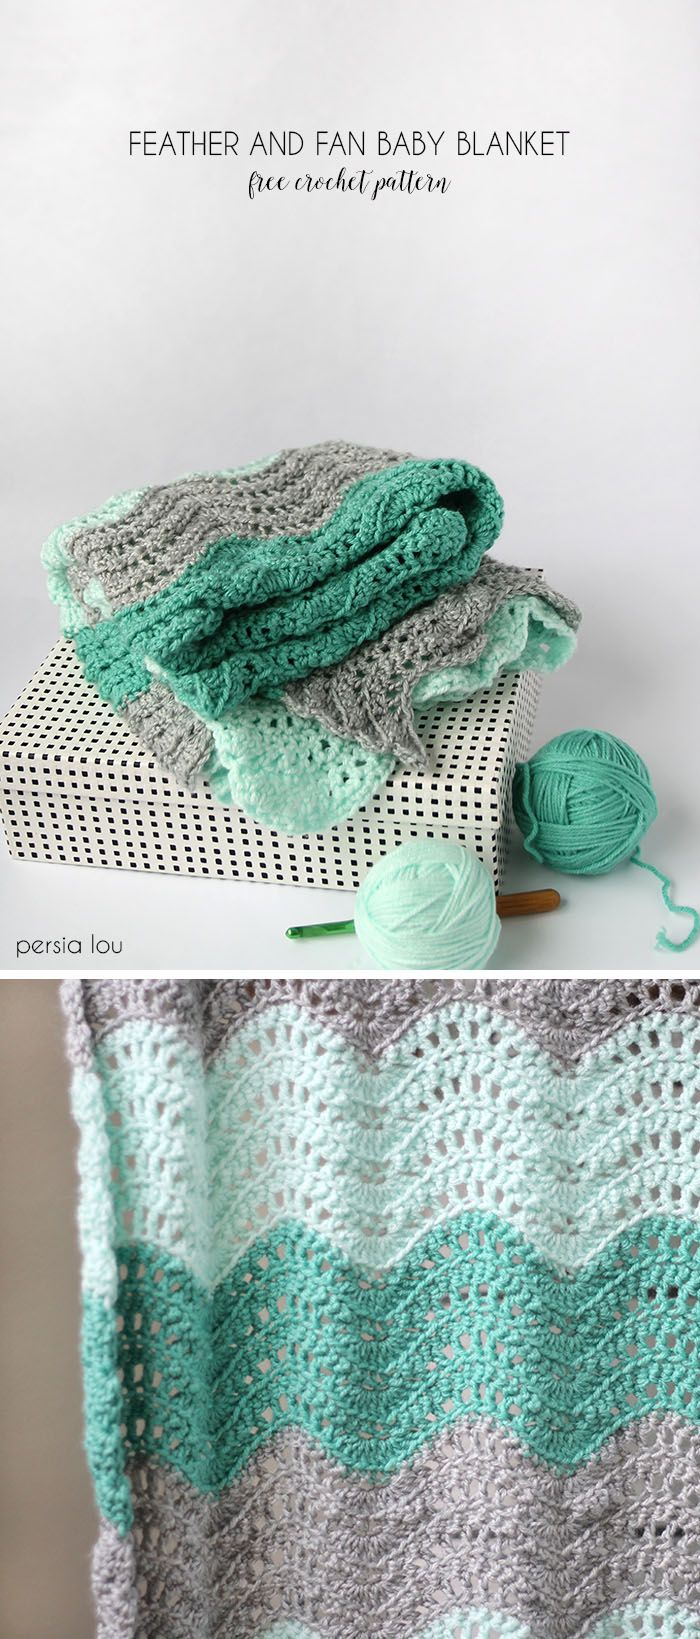 Crochet Feather and Fan Baby Blanket - Free Pattern | Decken, Häkeln ...